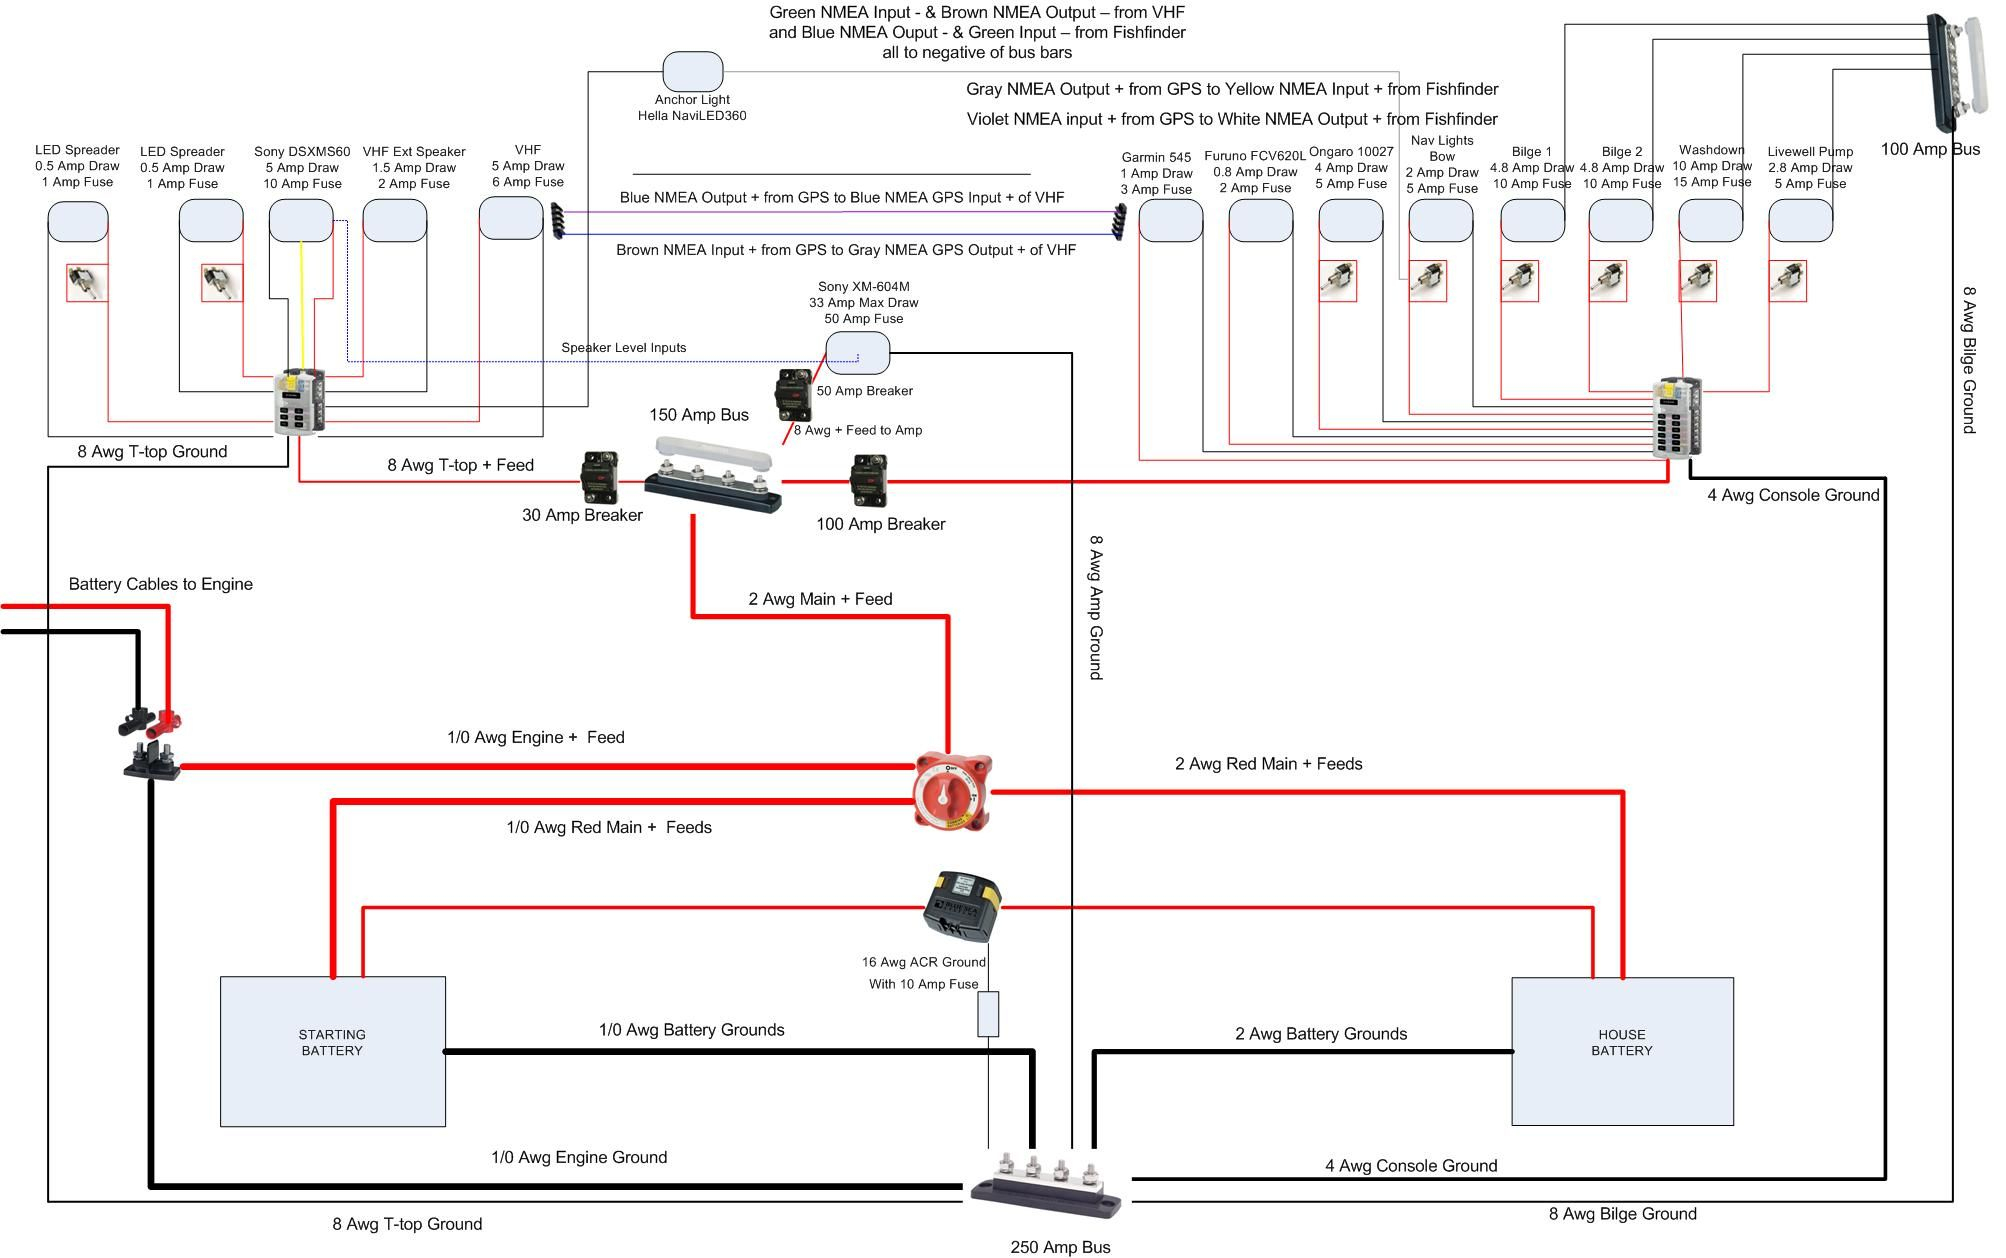 Simple To Read Wiring Diagram For A Boat   Boat   Boat, Boat Wiring - Basic 12 Volt Boat Wiring Diagram